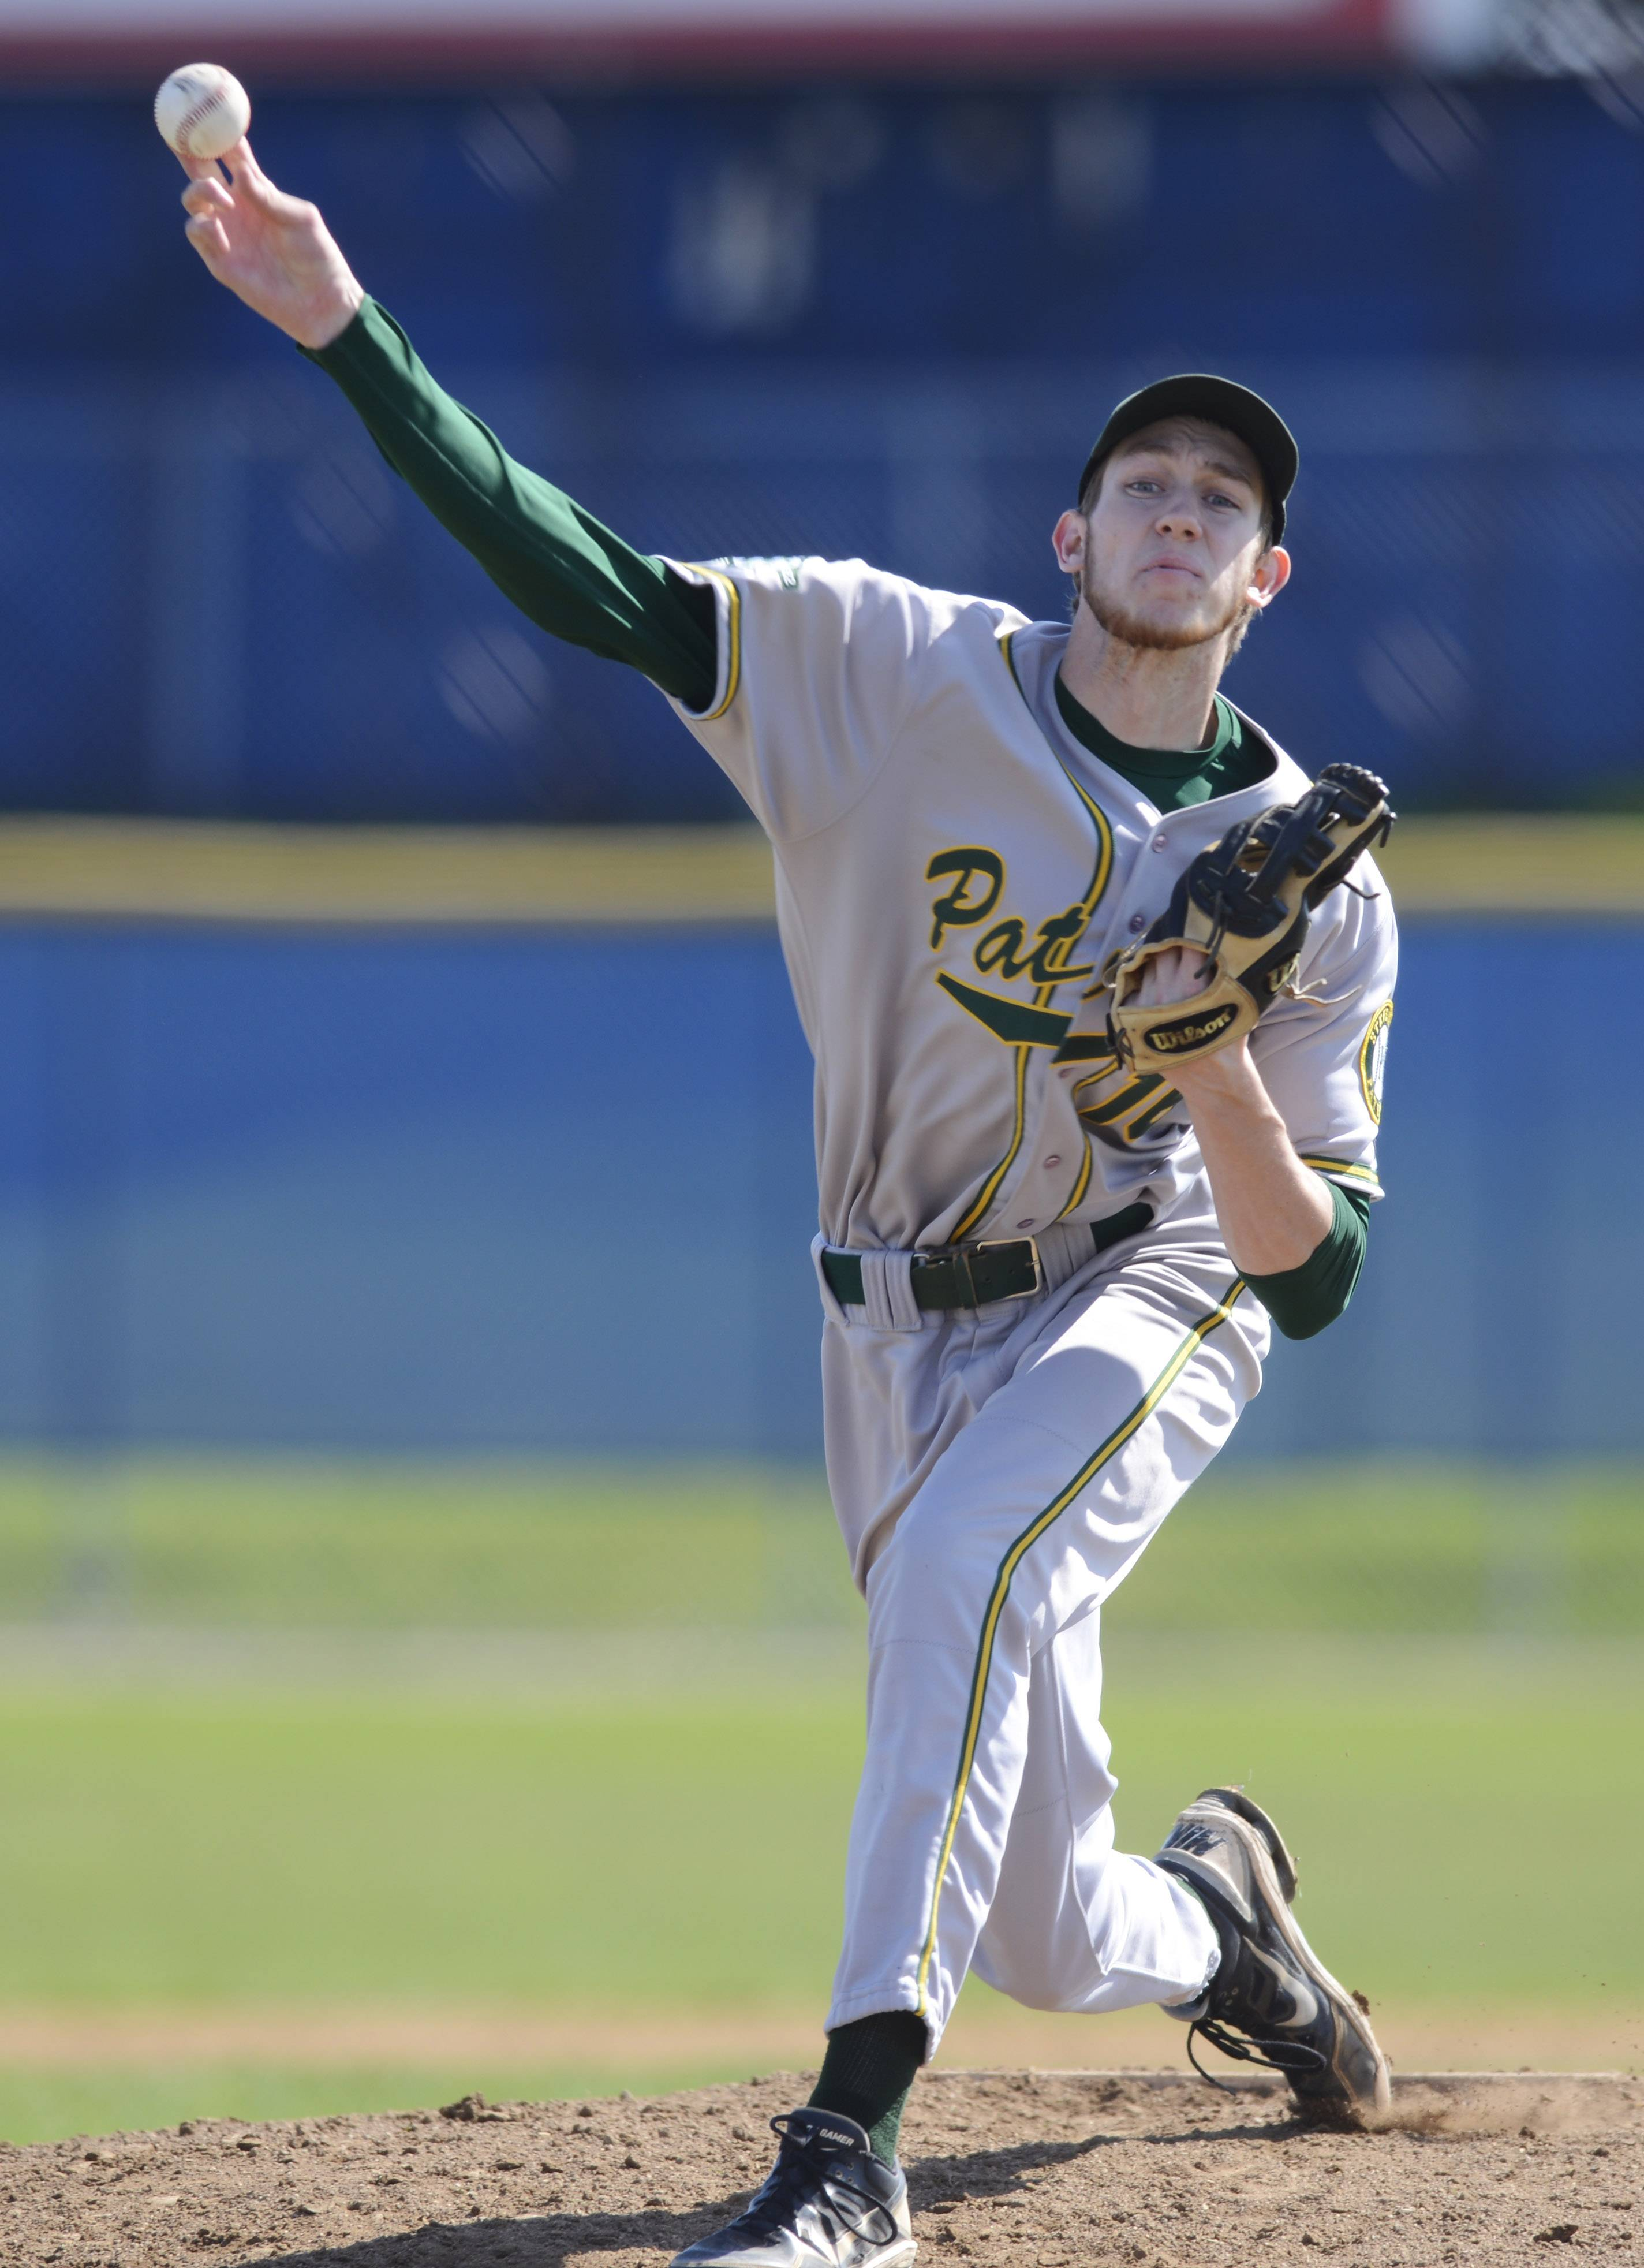 Stevenson pitcher LJ Austin makes his delivery during Saturday's game at Lake Zurich.